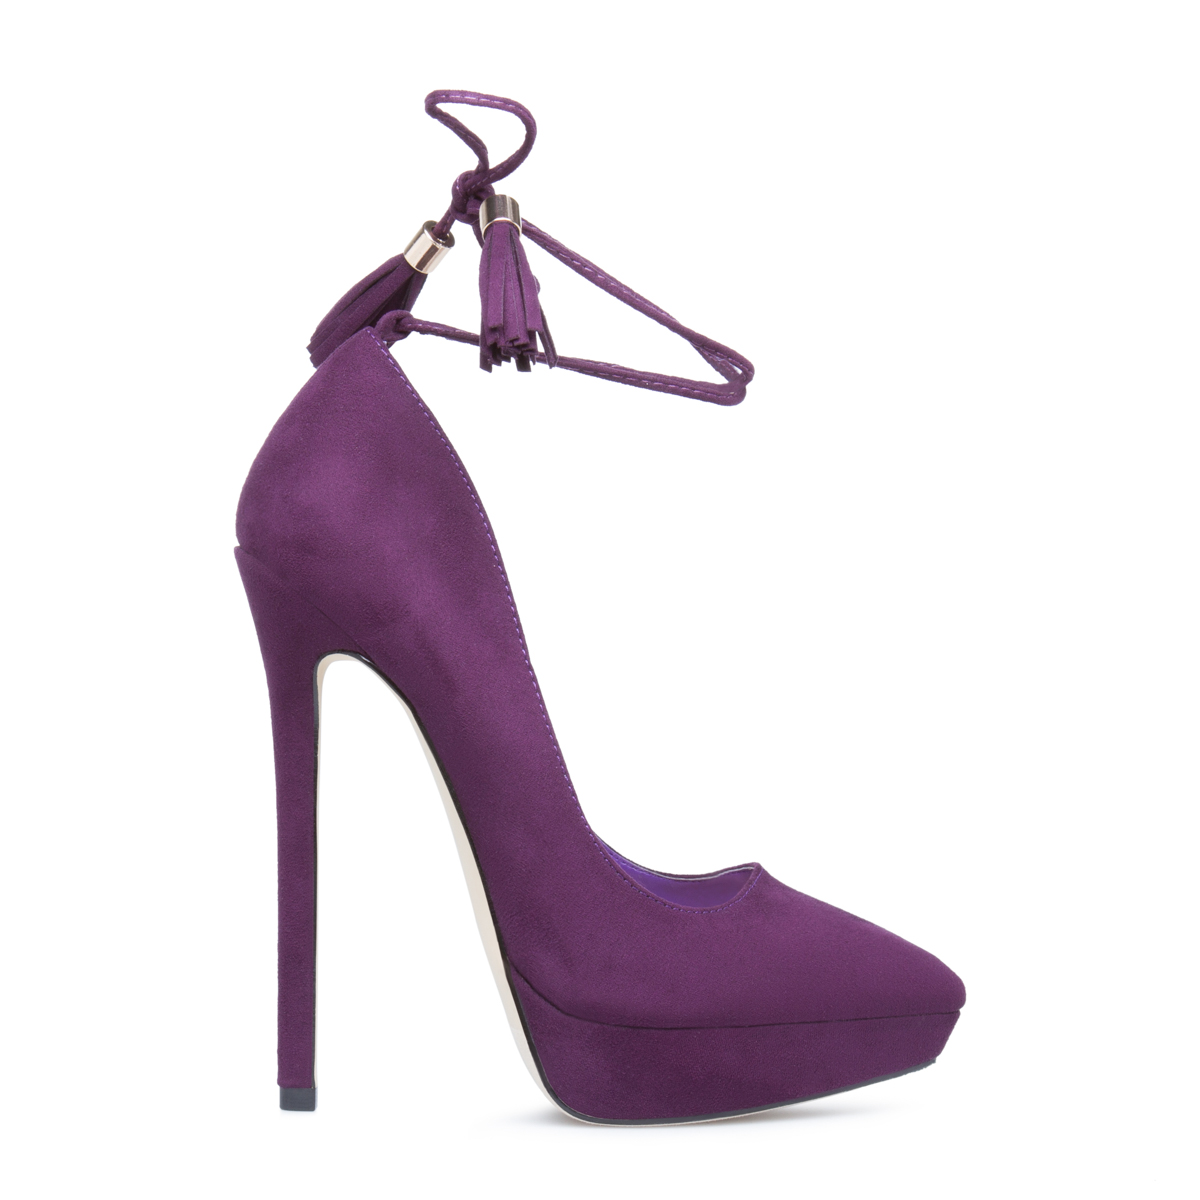 Rachel Zoe holiday outfit ideas, Verlena high heel from ShoeDazzle